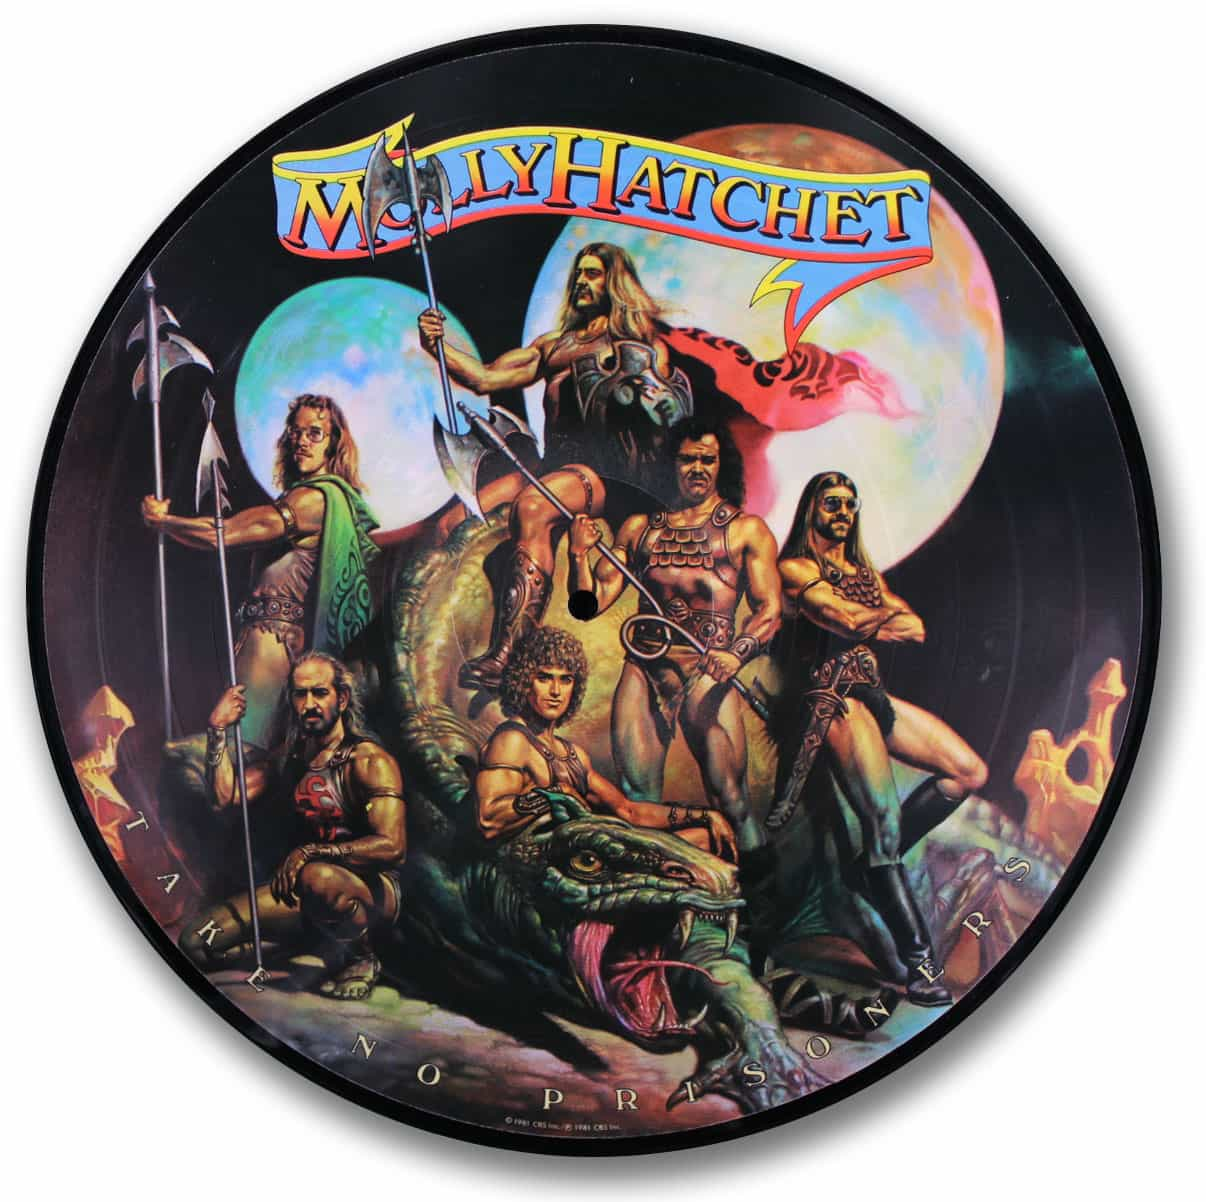 Molly Hatchet - Take No Prisoners picture disc